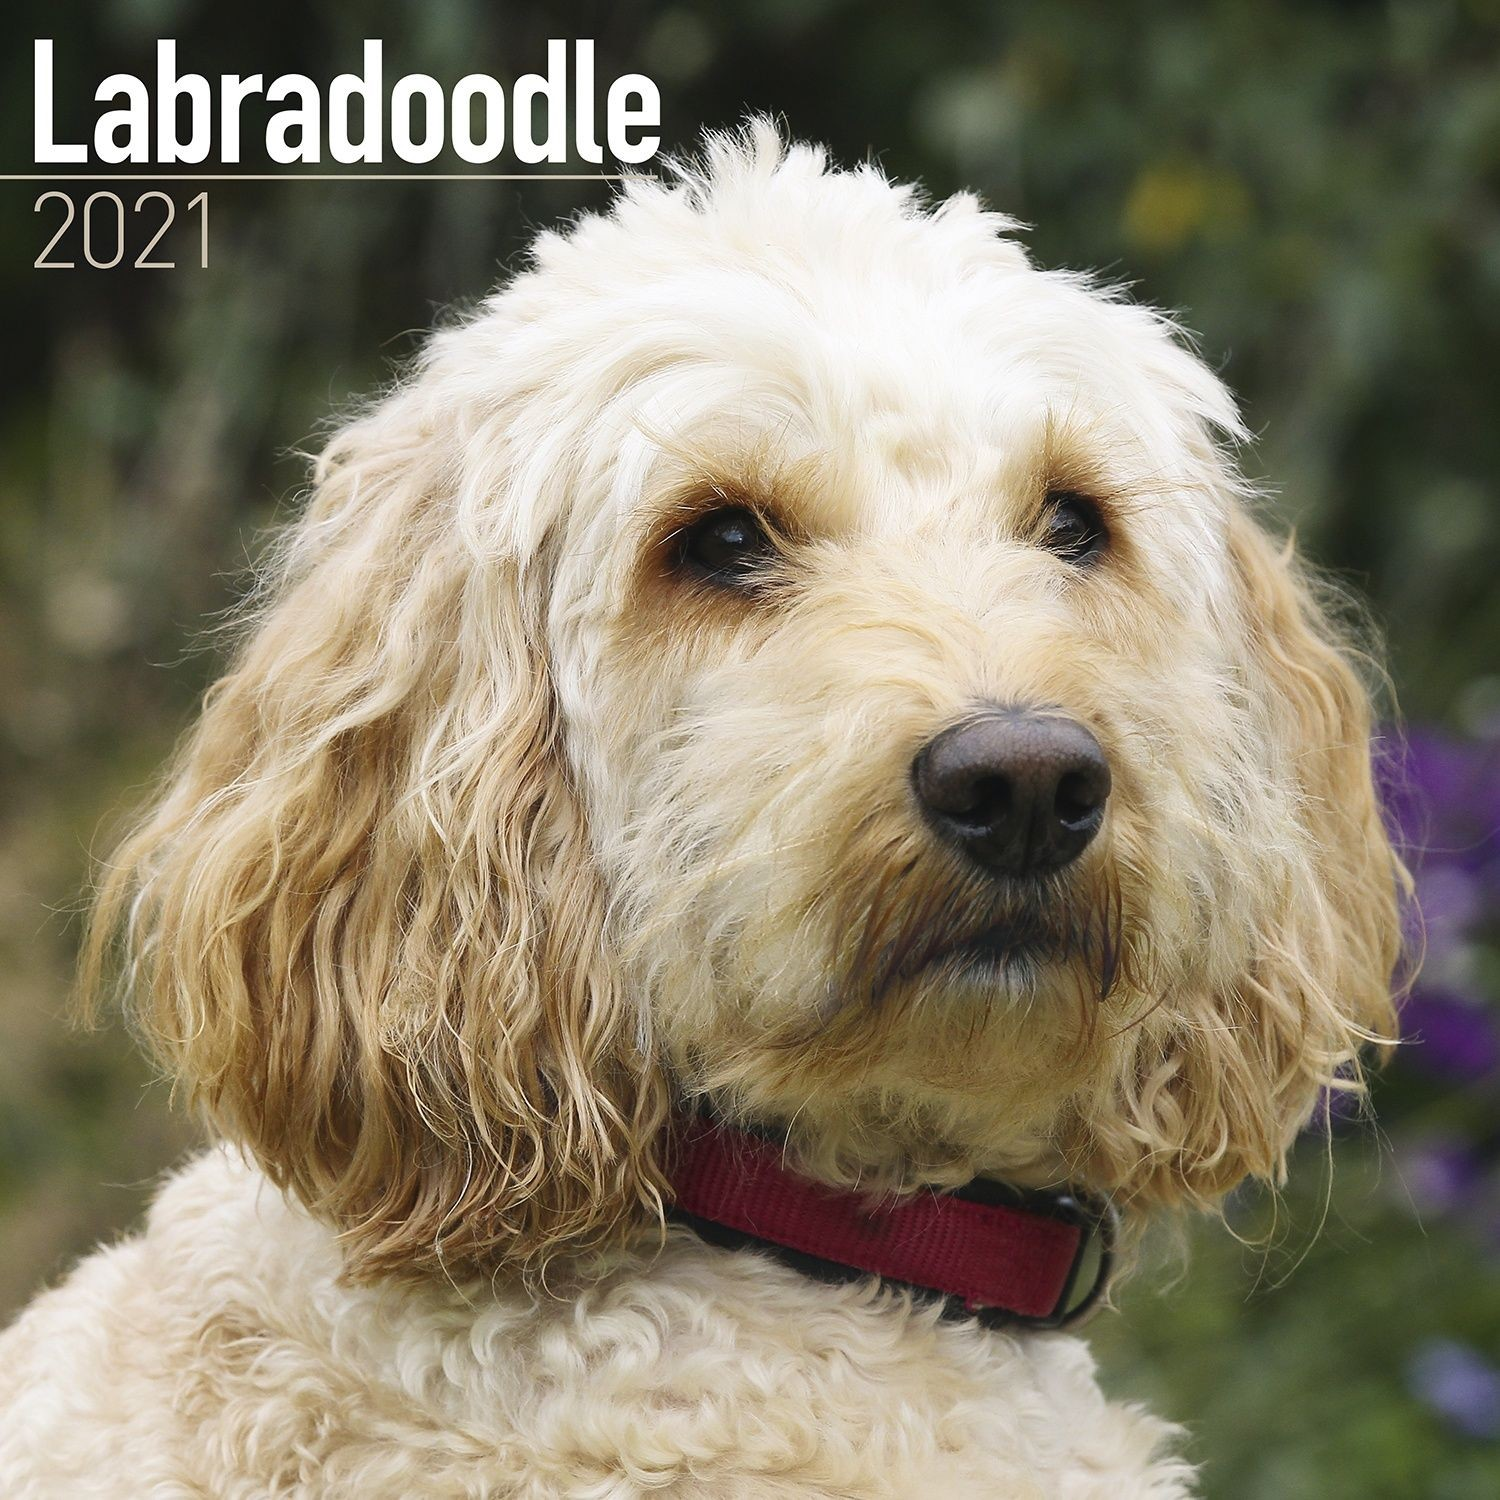 Labradoodle Wall Calendar 2021 by Avonside